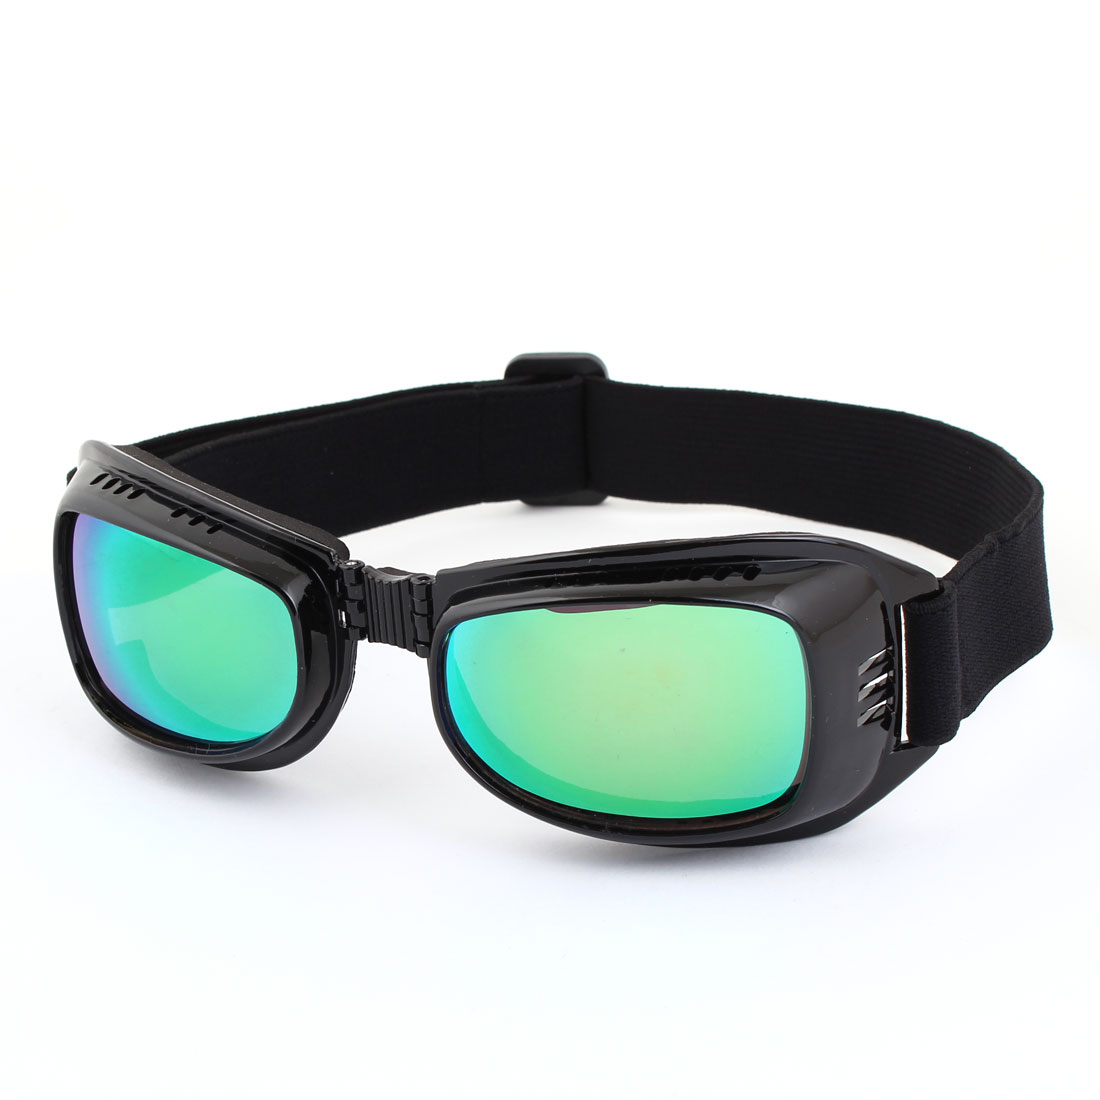 Unisex Foldable Frame Elastic Band Strap Green Lens Motorcycle Goggles Glasses